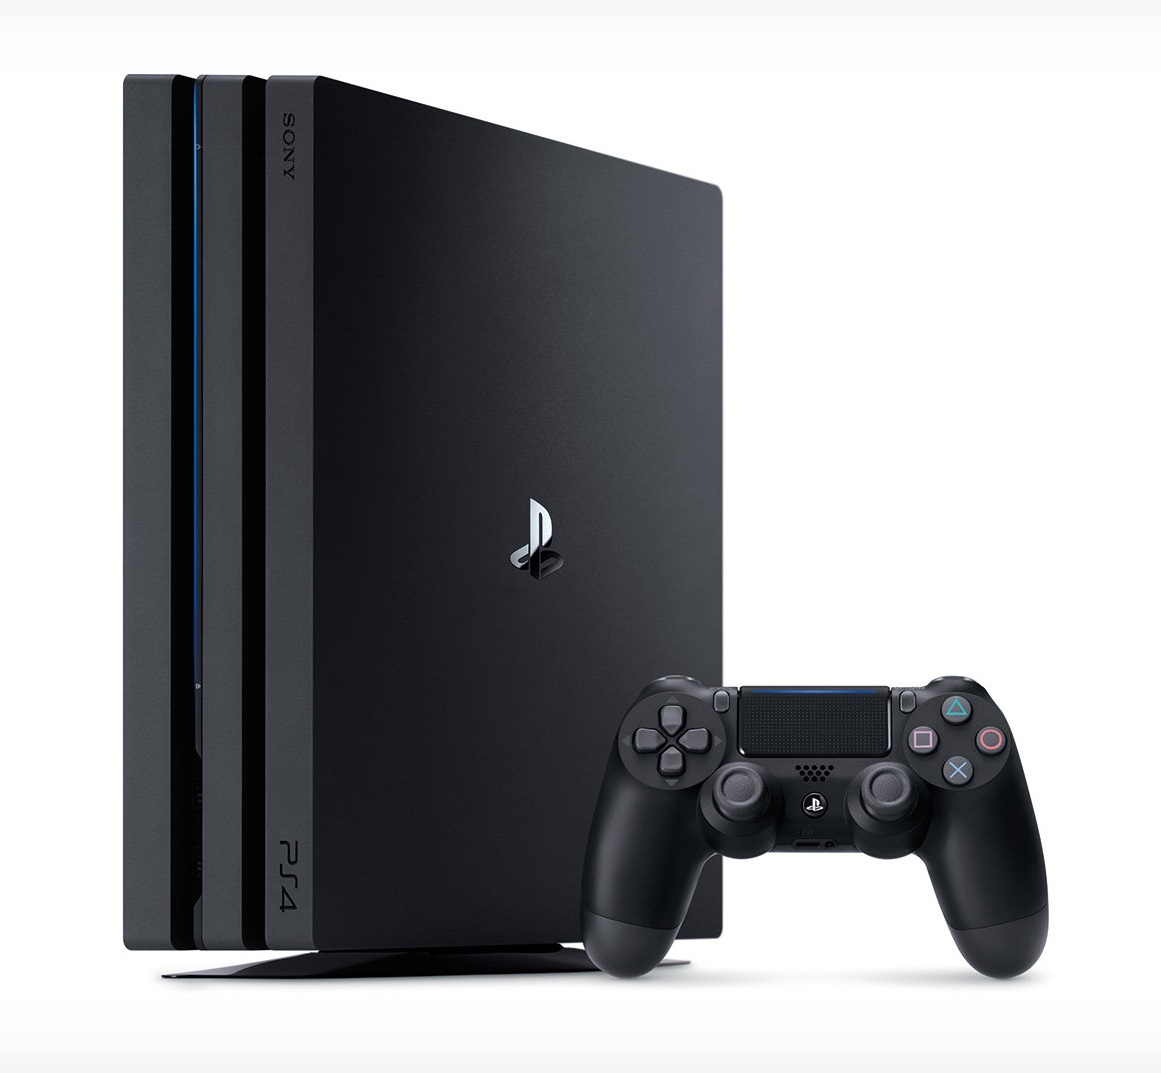 ps4-pro-screen-01-eu-06sep16.jpg